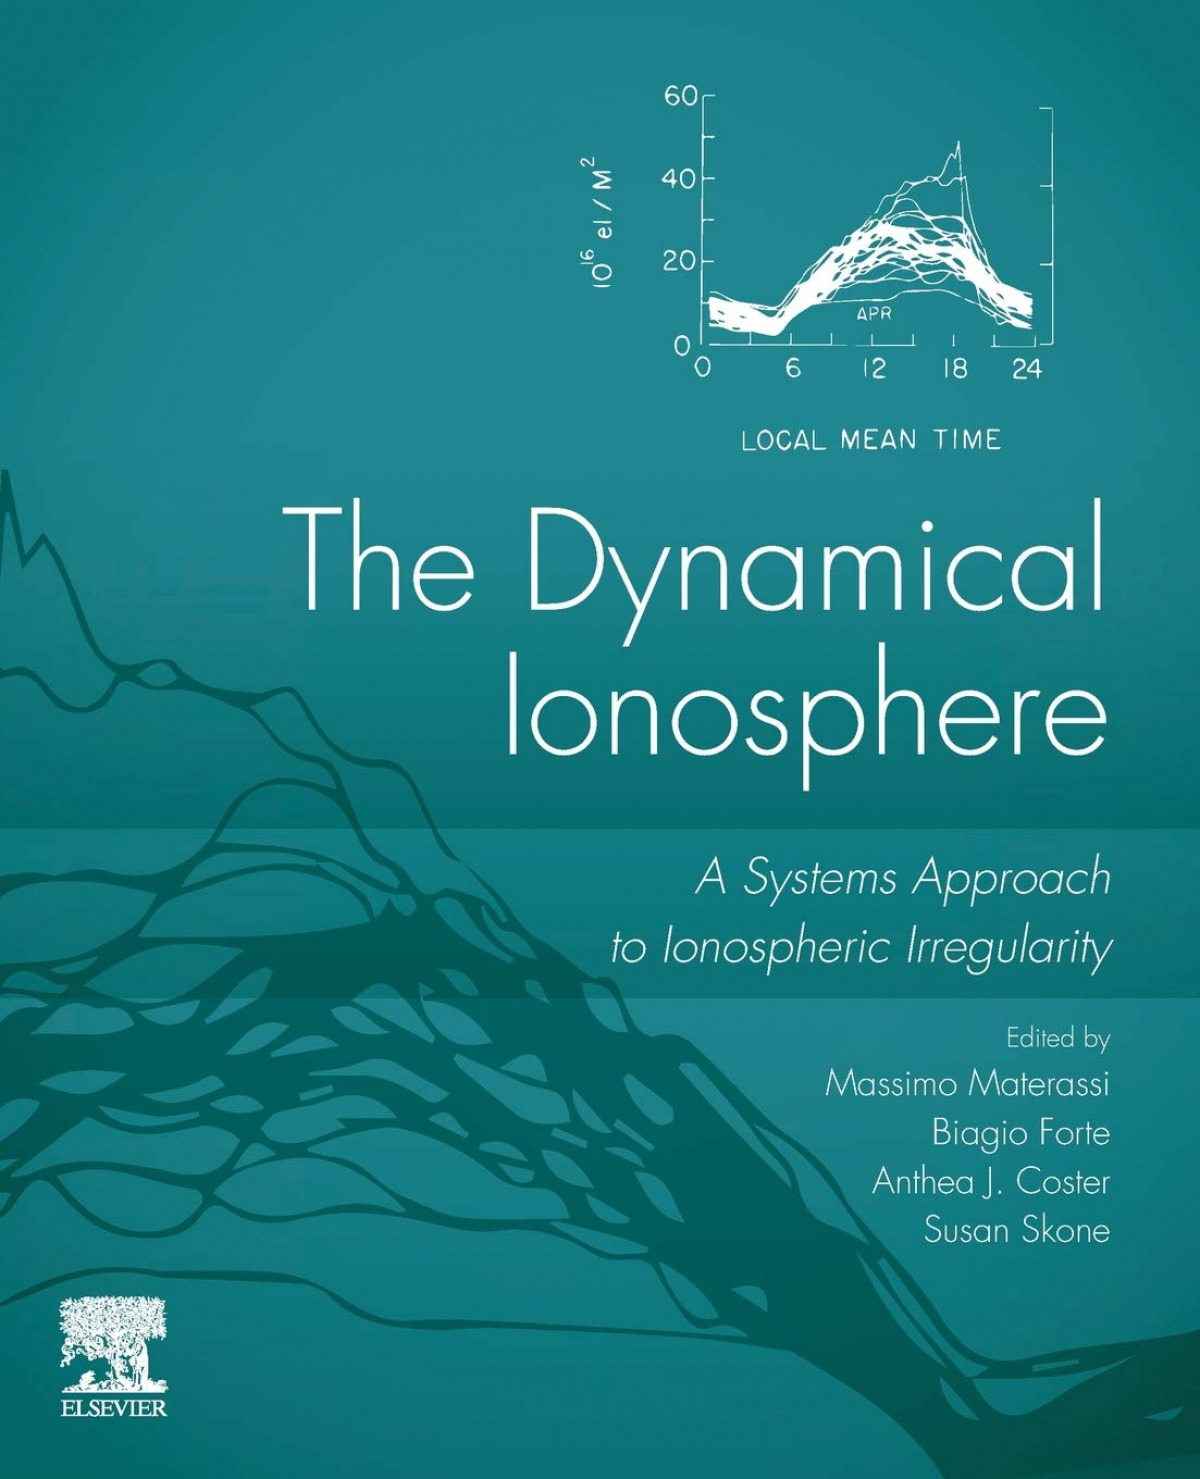 The dynamical ionosphere